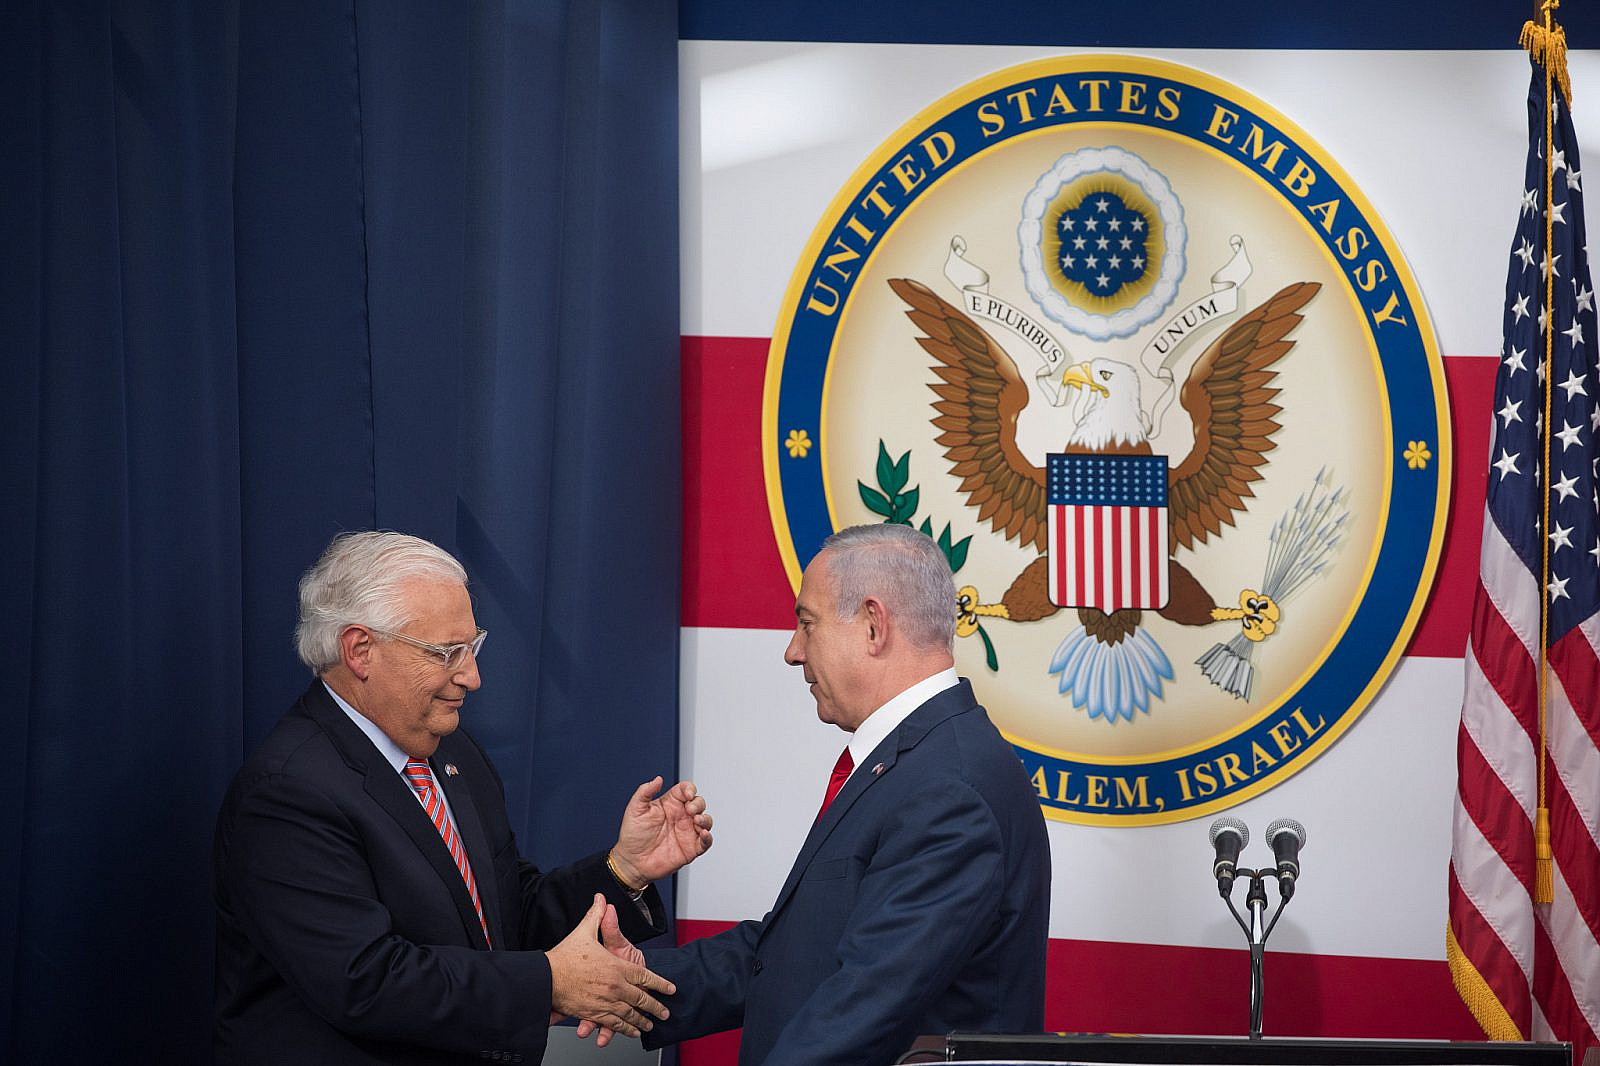 Prime Minister Benjamin Netanyahu with US Ambassador to Israel, David Friedman at the official opening ceremony of the U.S. embassy in Jerusalem on May 14, 2018. (Yonatan Sindel/Flash90)